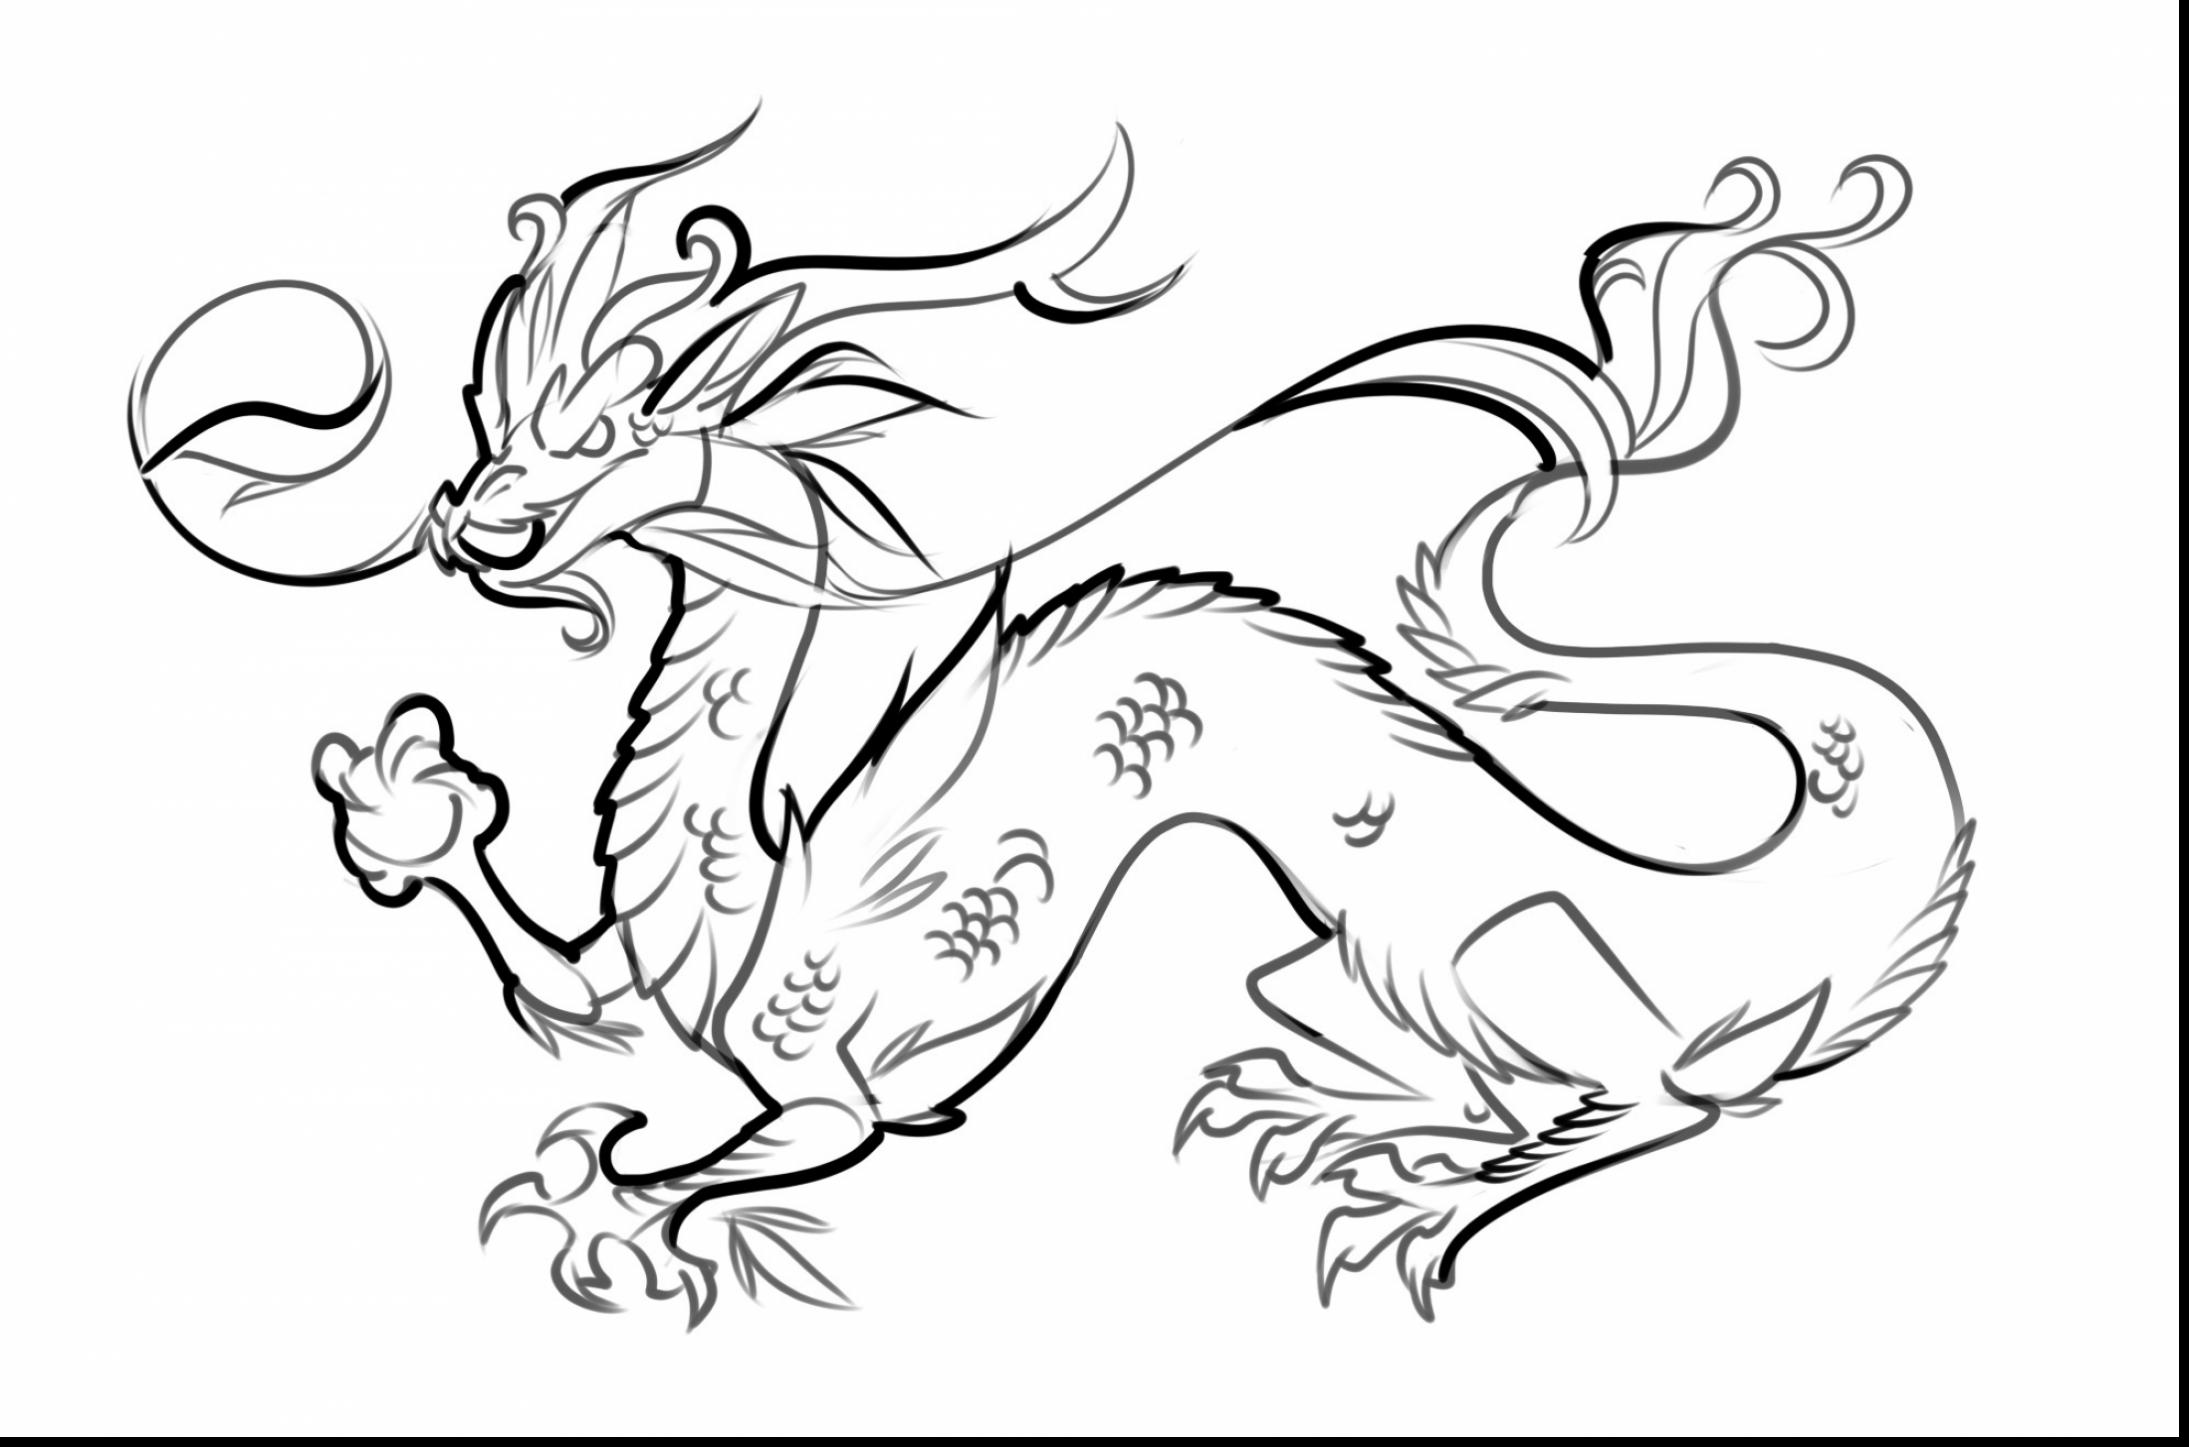 2189x1447 Excellent Realistic Dragon Coloring Pages With Coloring Pages